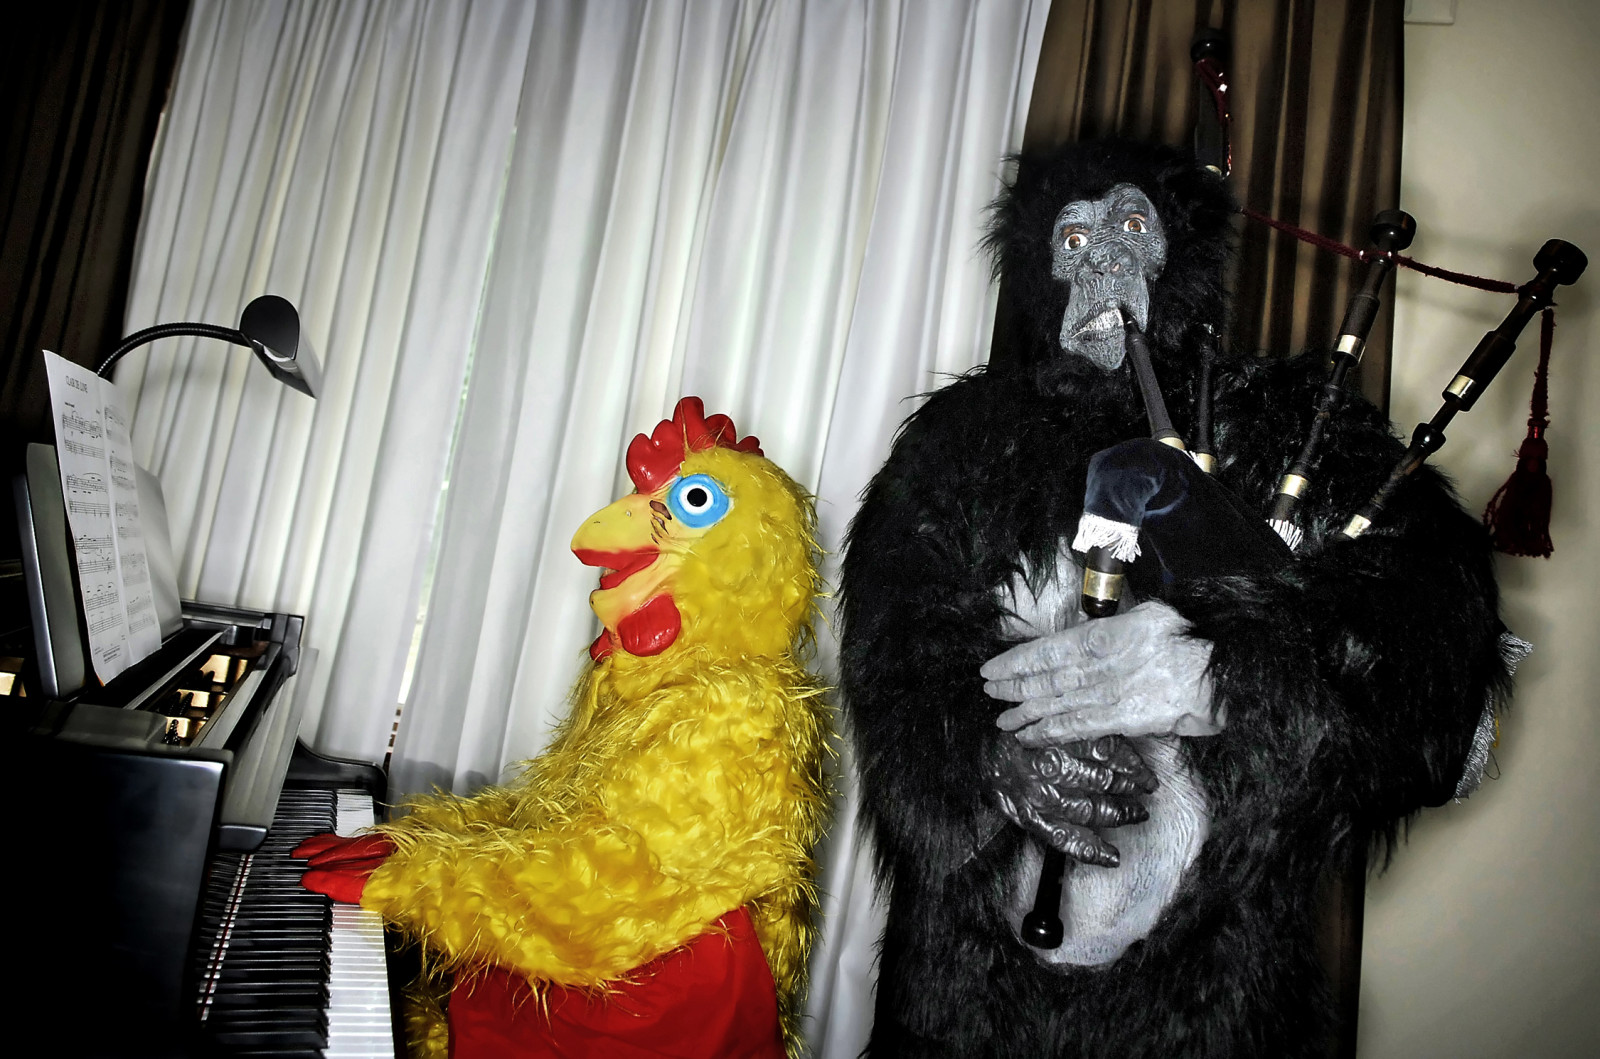 "Cara McMillan, left, and her husband Del, both active musicians, have grown tired of their chicken and gorilla suits. They hope to sell the costumes. ""We've had some good times with them,"" said Del. The couple, who have been married for 10 years and met while both were singers in their church's choir, found new costumes to continue their yearly traditions. Cara invested in a Dr. Seuss suit, and she recently bought Del a new Viking suit. ""We wanted something new,"" she says."